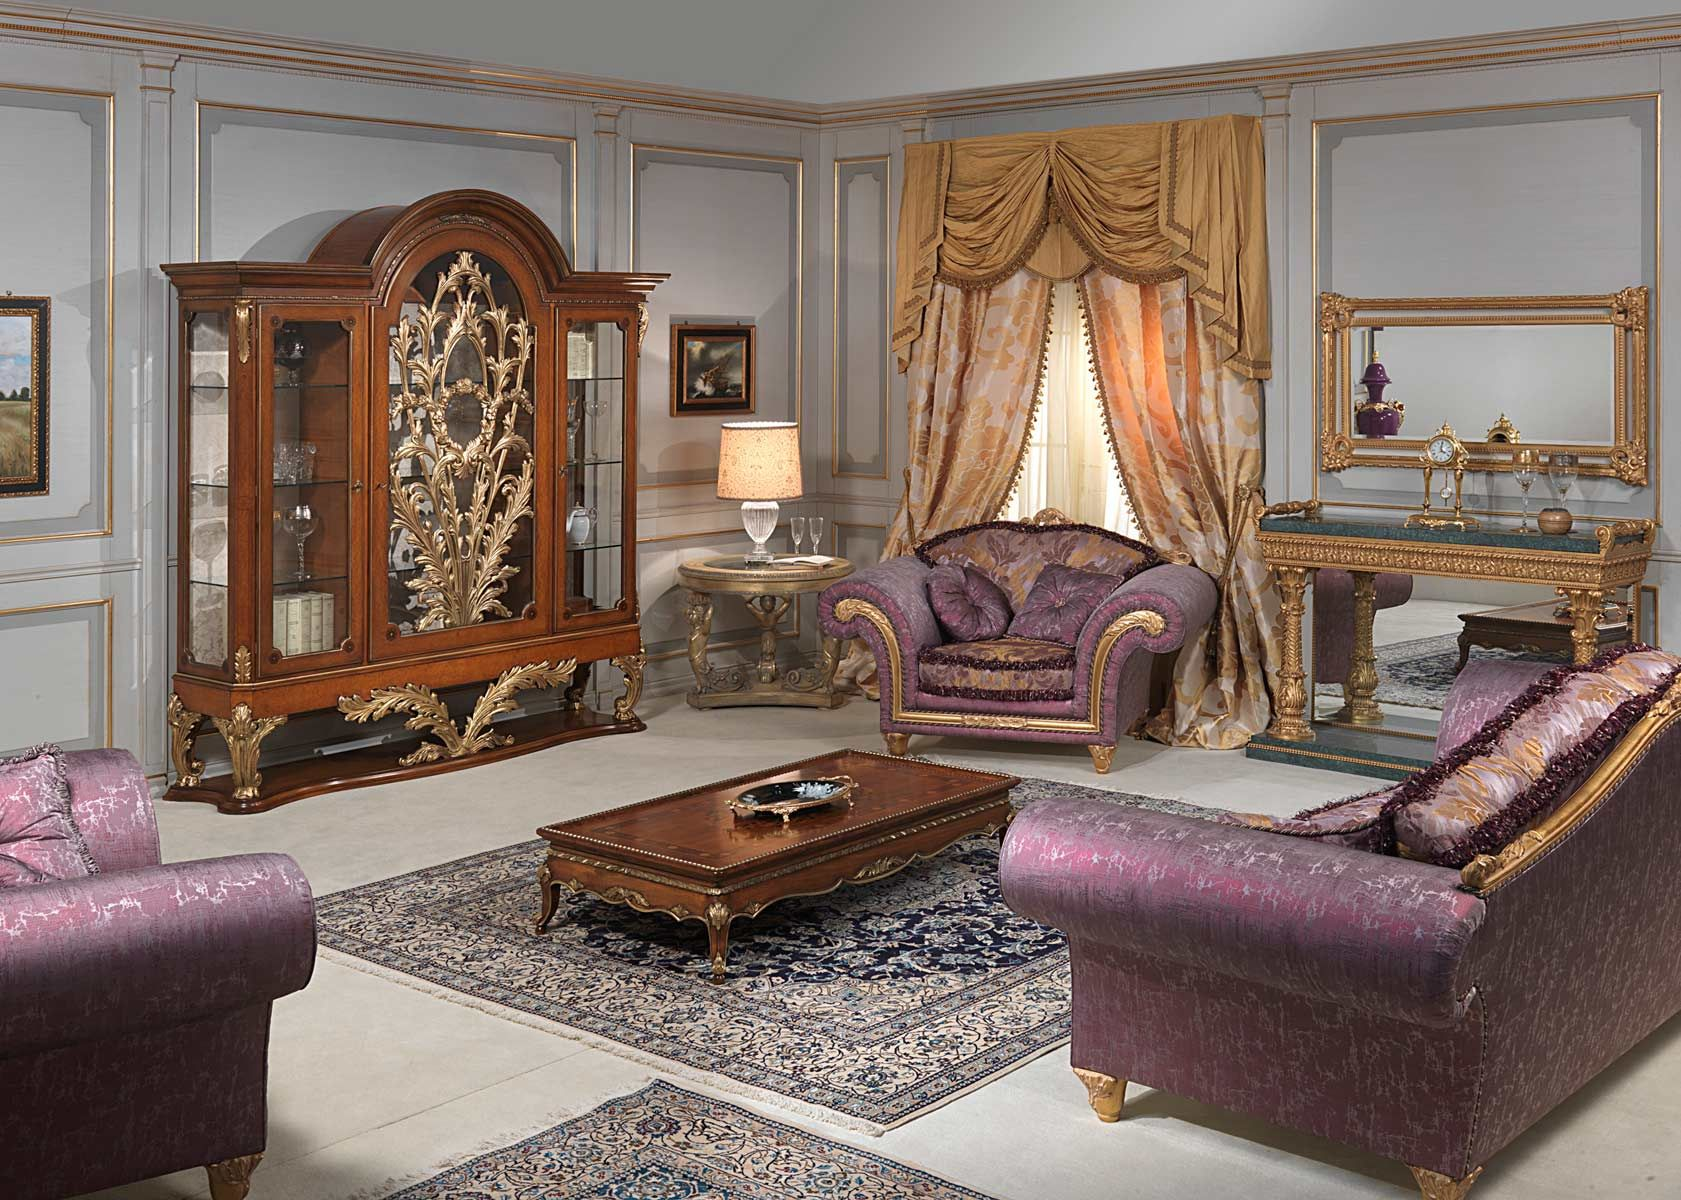 living room showcase designs%0A Living room with glass showcase in myrtle burl in Louis XVI style  carvings  executed by